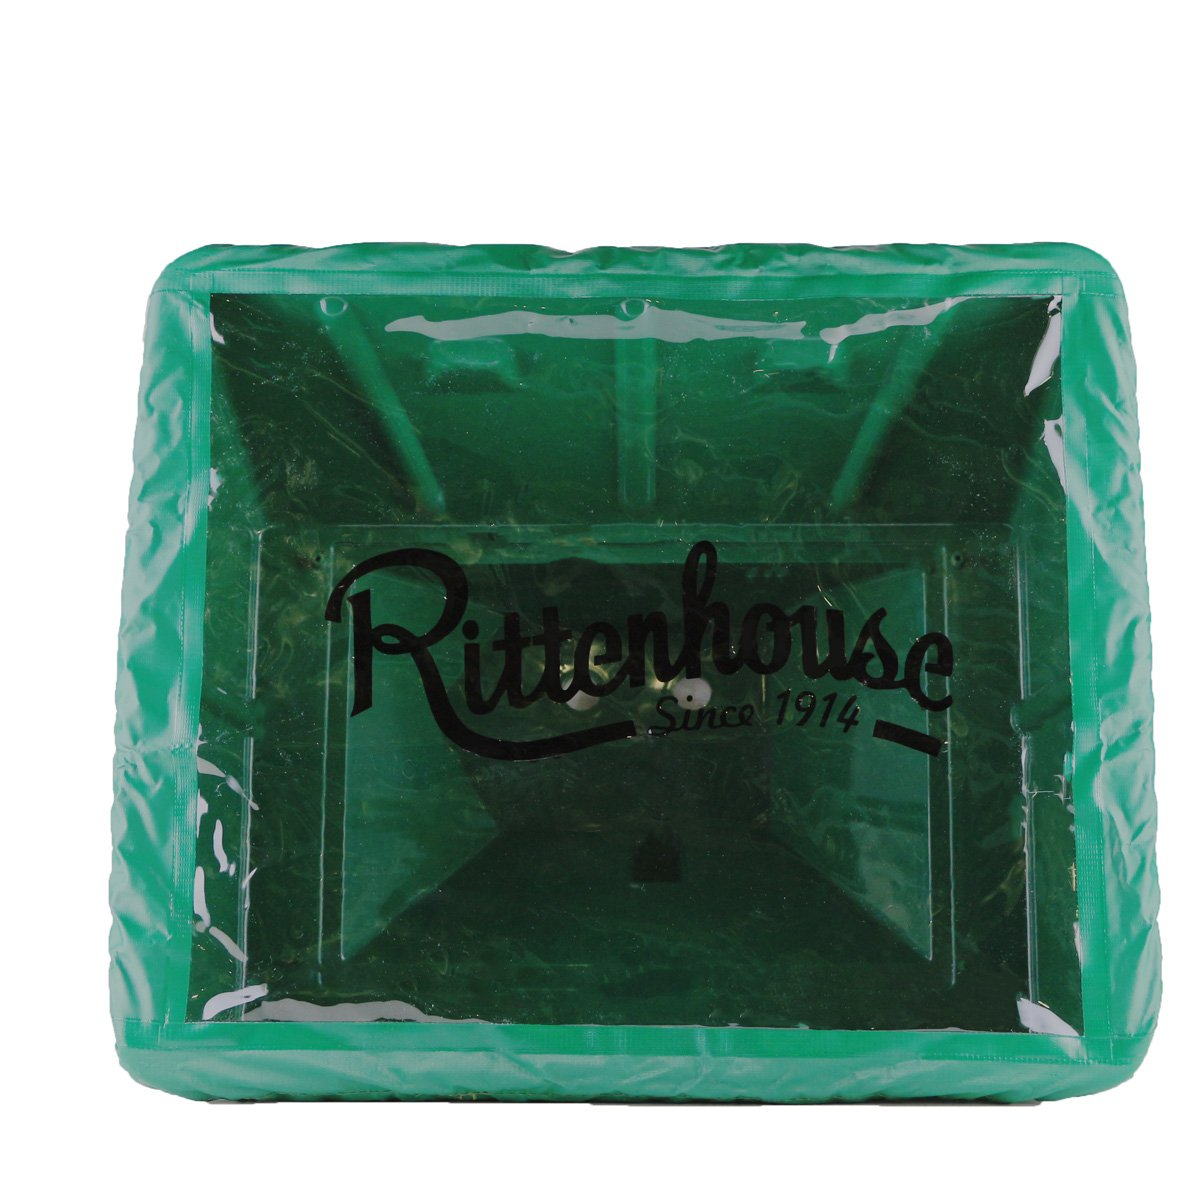 Rittenhouse Lesco Spreader Hopper Cover